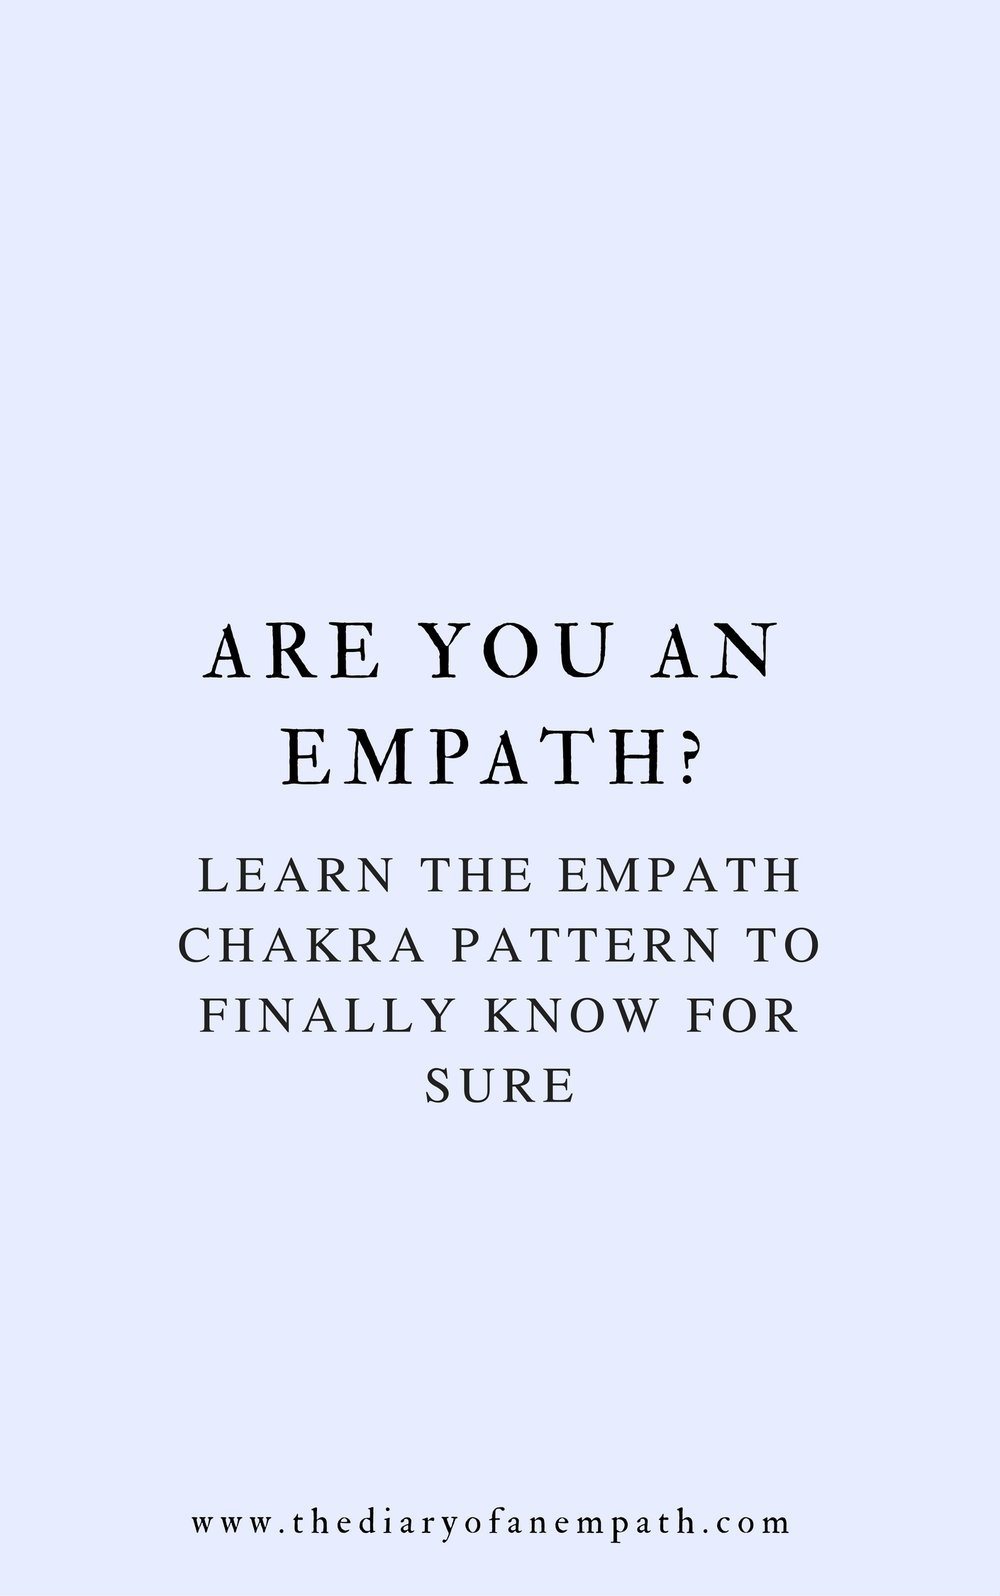 the empath chakra pattern, thediaryofanempath.com